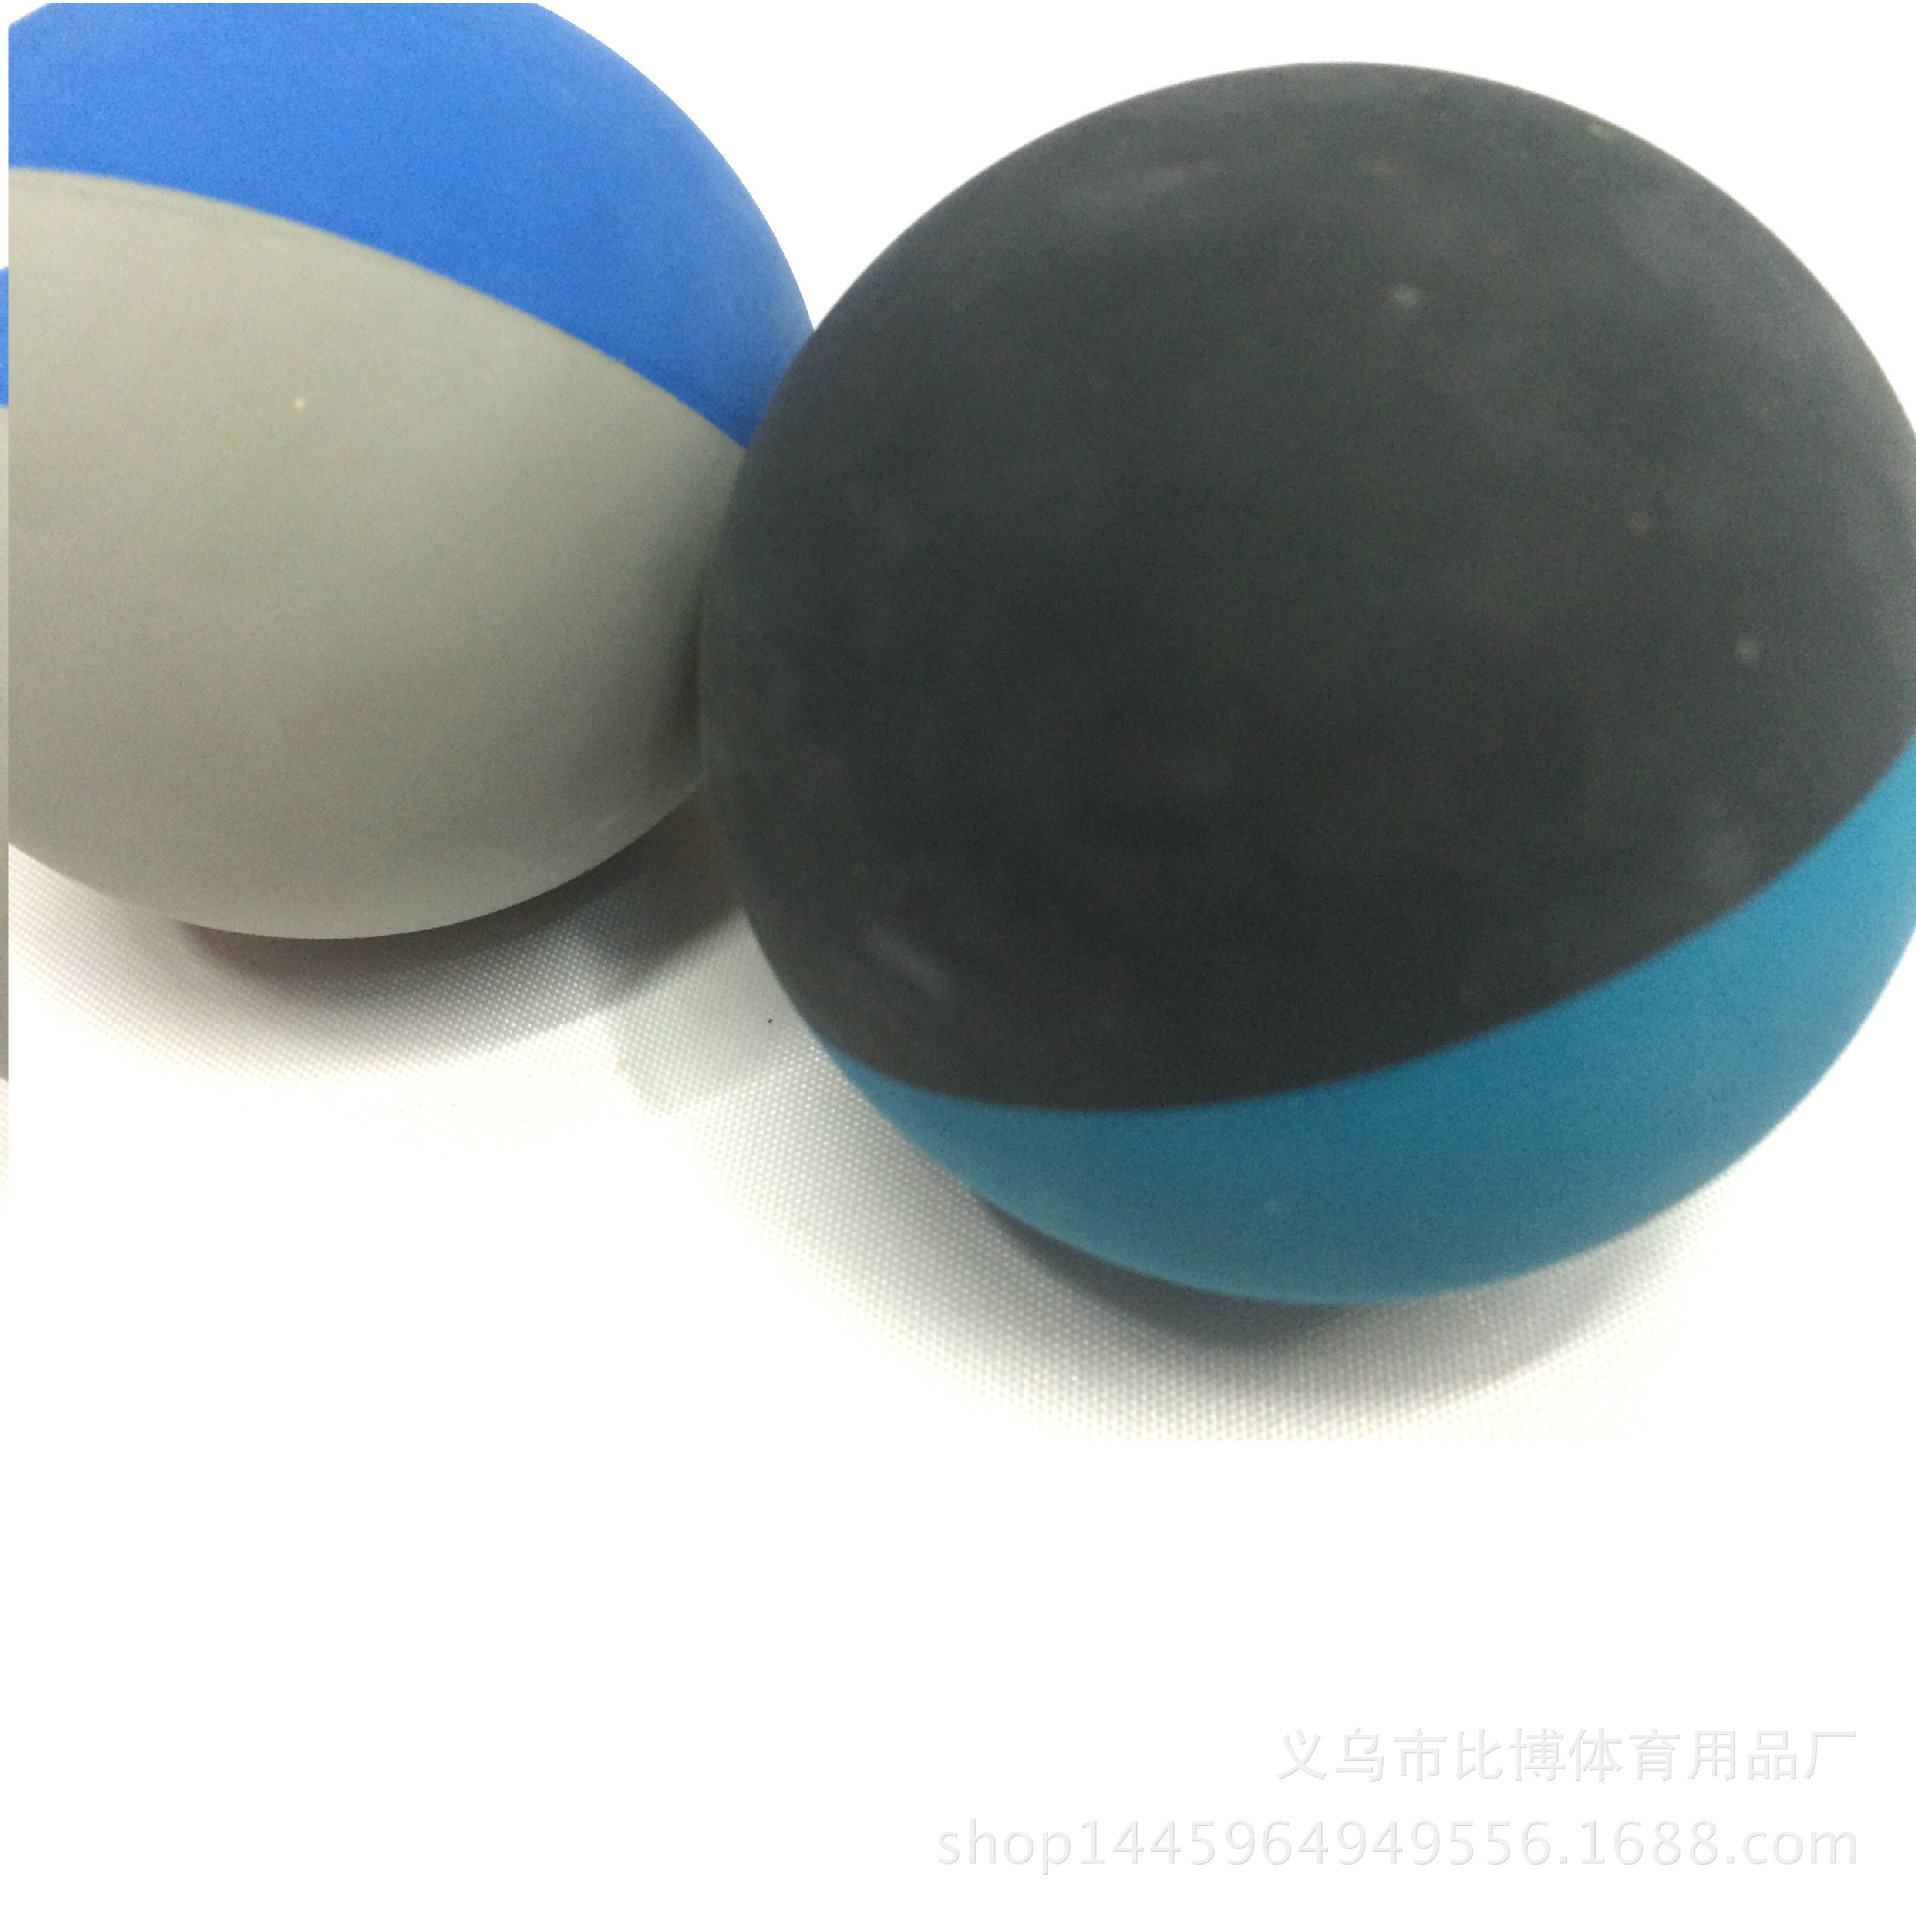 Genuine Product 5.5 Cm American-Style Standard Squash Rubber Hollow Spheres Wall Thickness 5 Mm High Bounce Special Offer Double